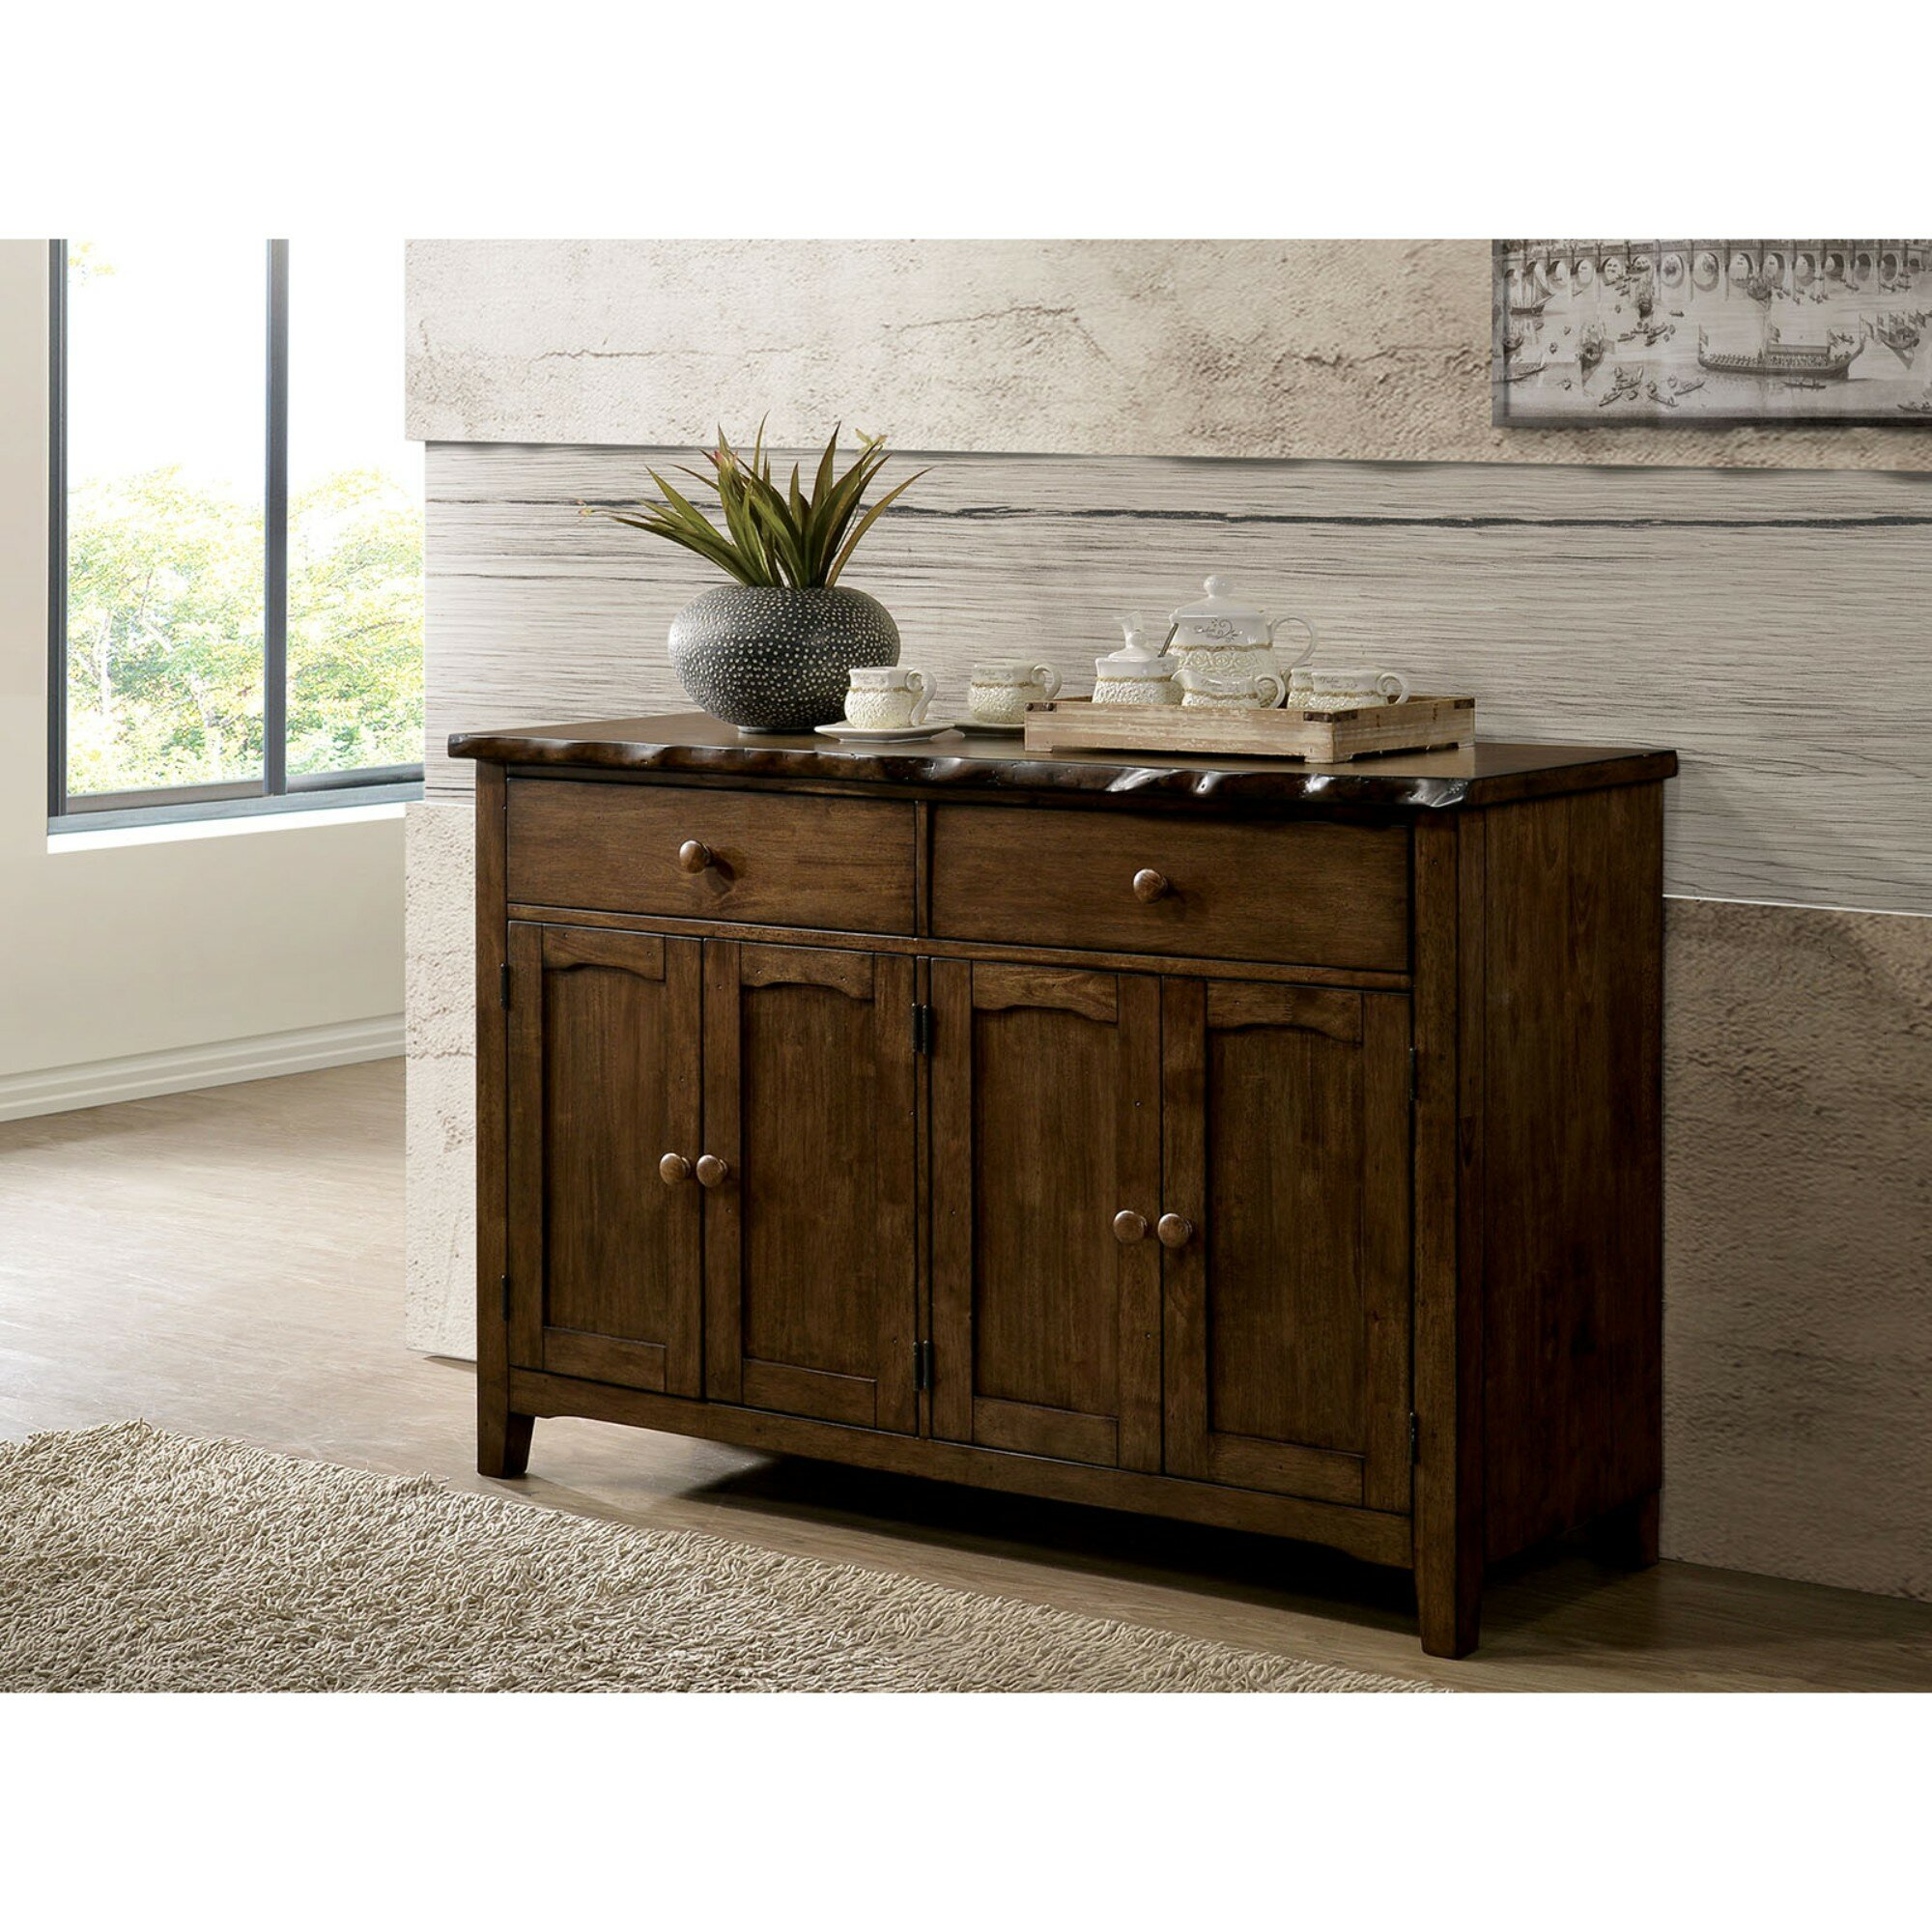 Sprowston Rustic Solid Wood Rectangular Sideboard with Whitten Sideboards (Image 24 of 30)